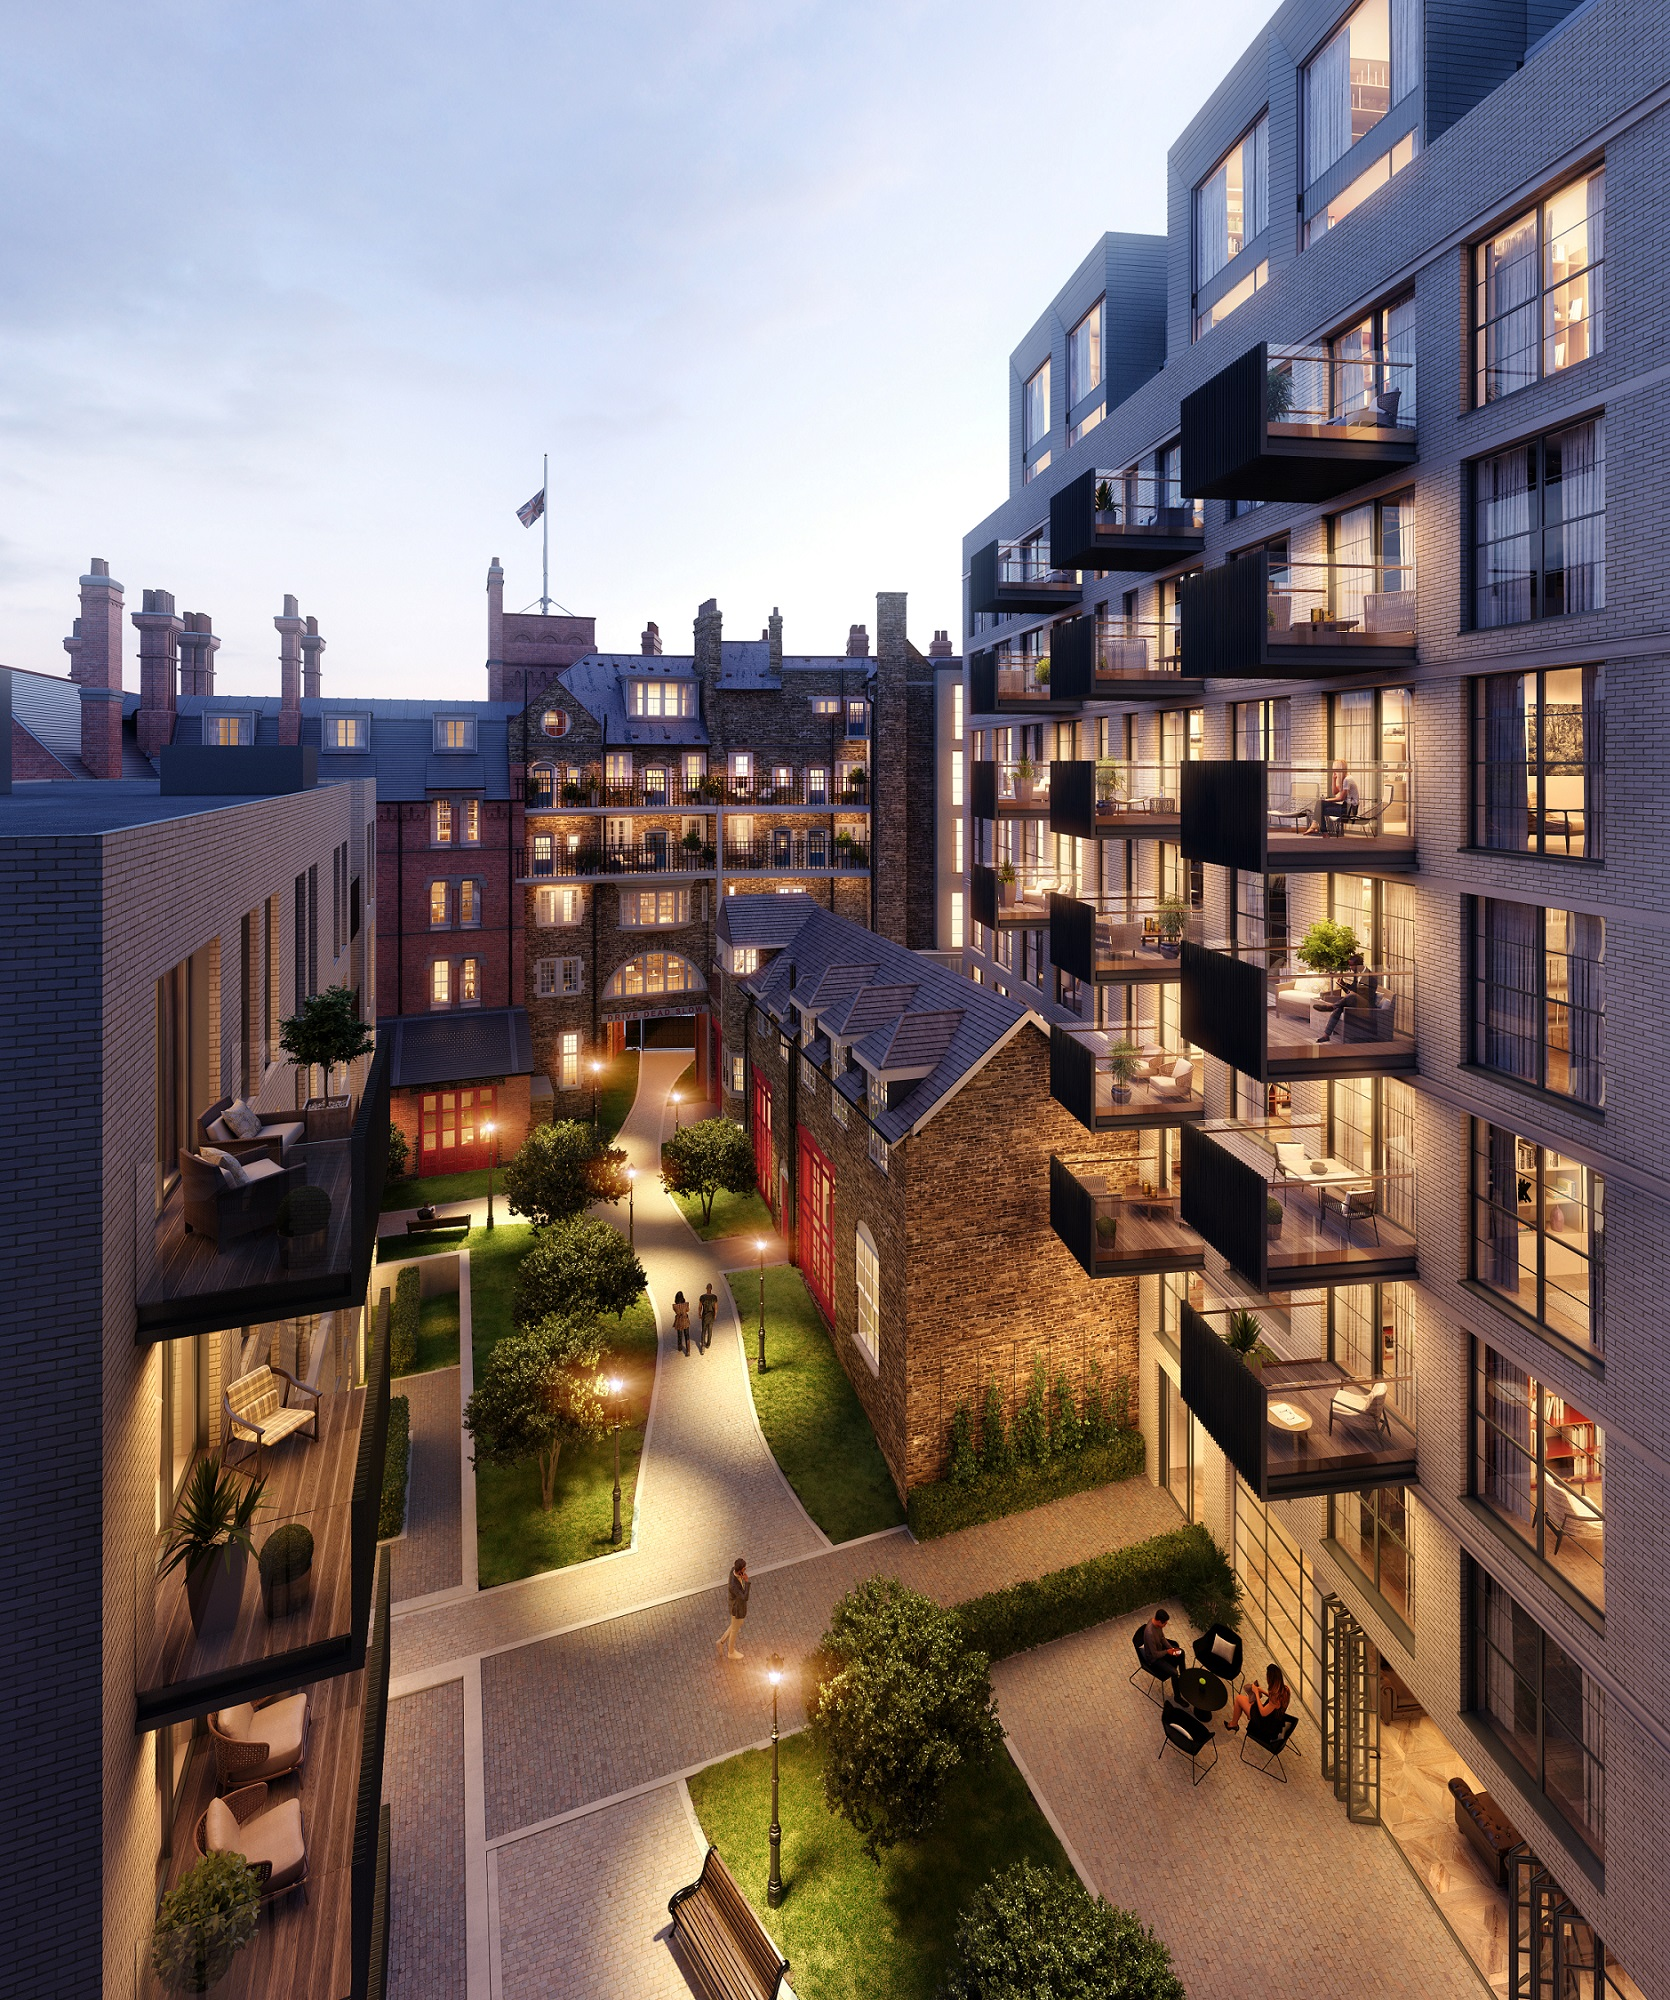 Brigade Court Residential Development